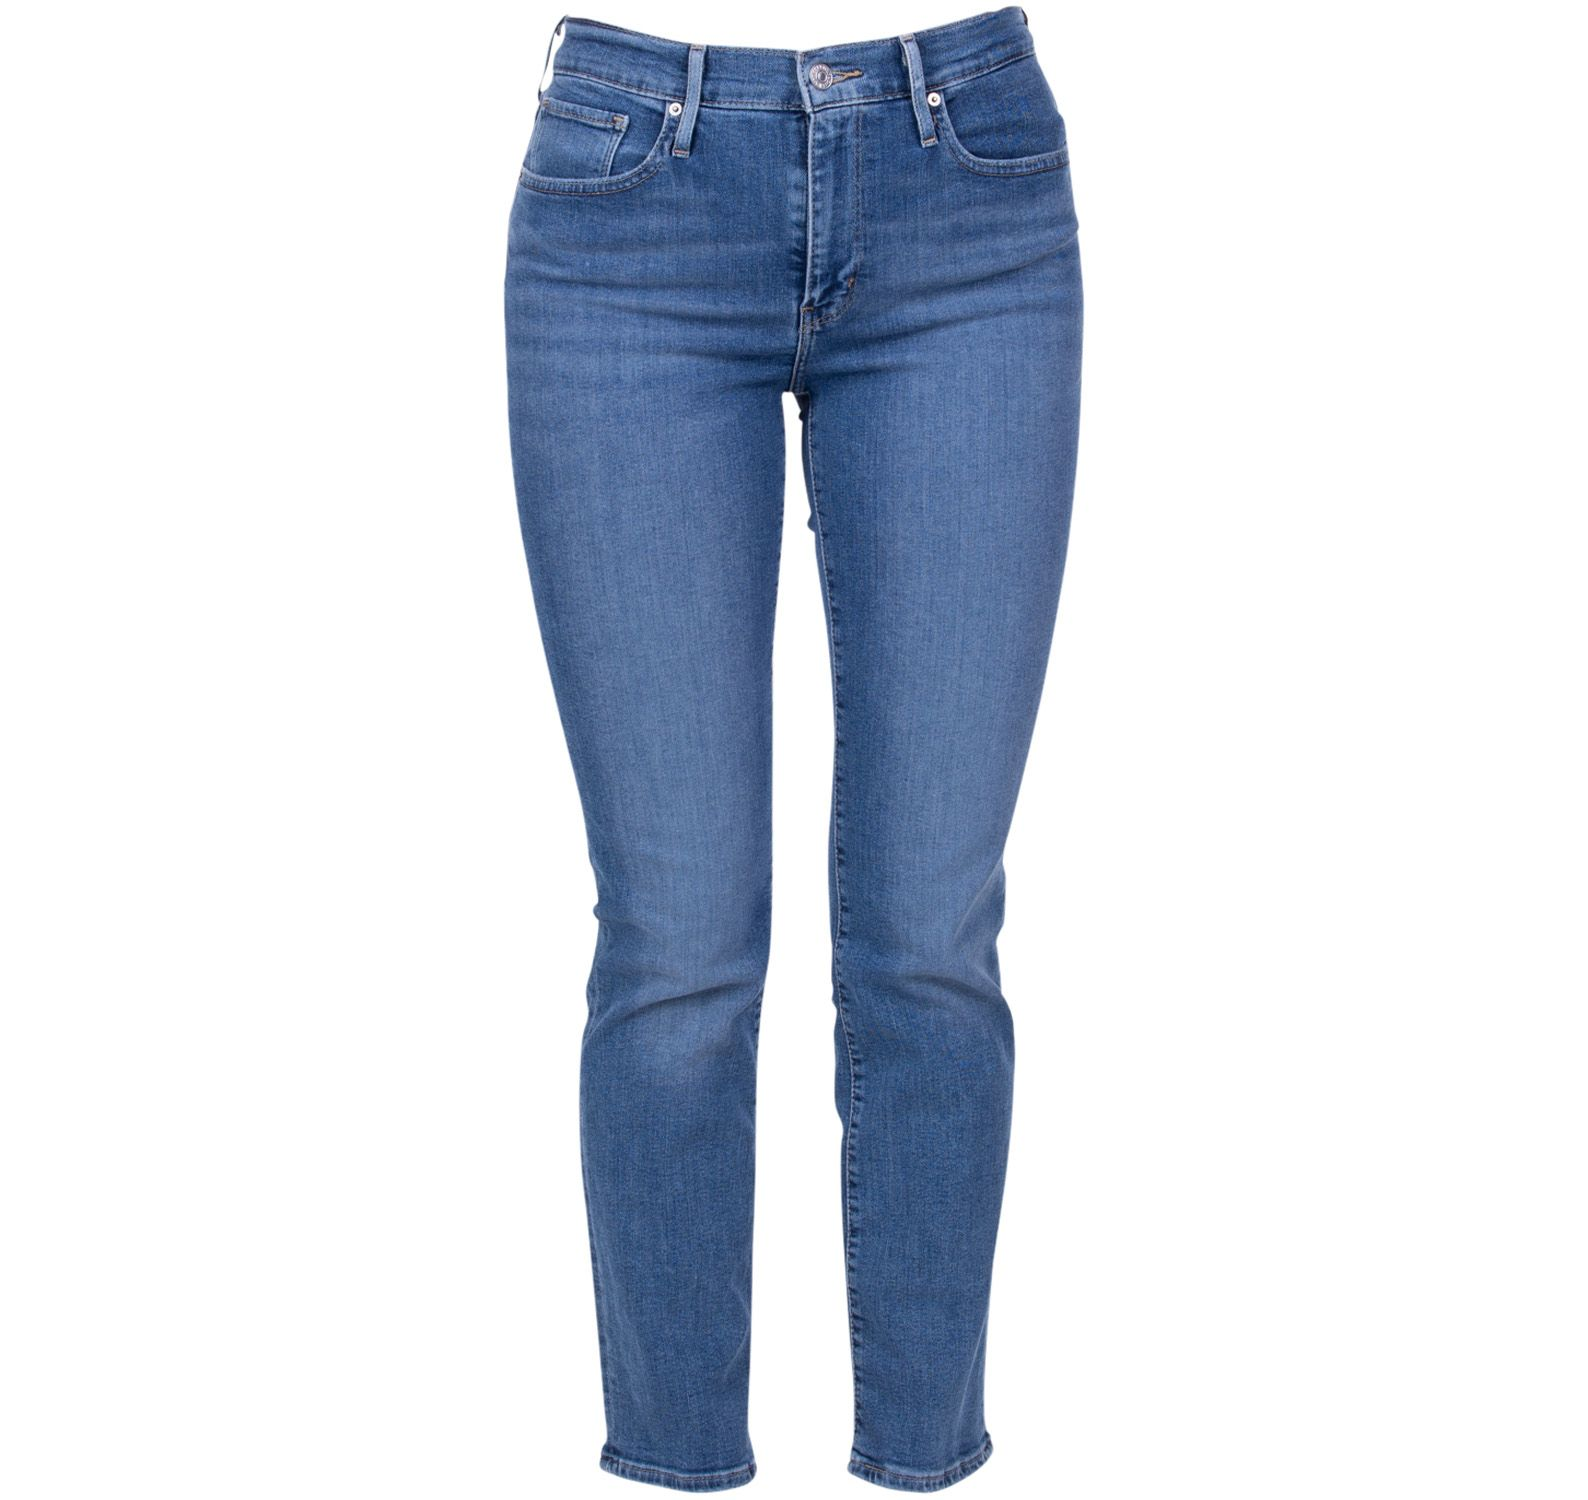 724 High Rise Straight Second, Med Indigo - Worn In, 25/30,  Levi's Jeans